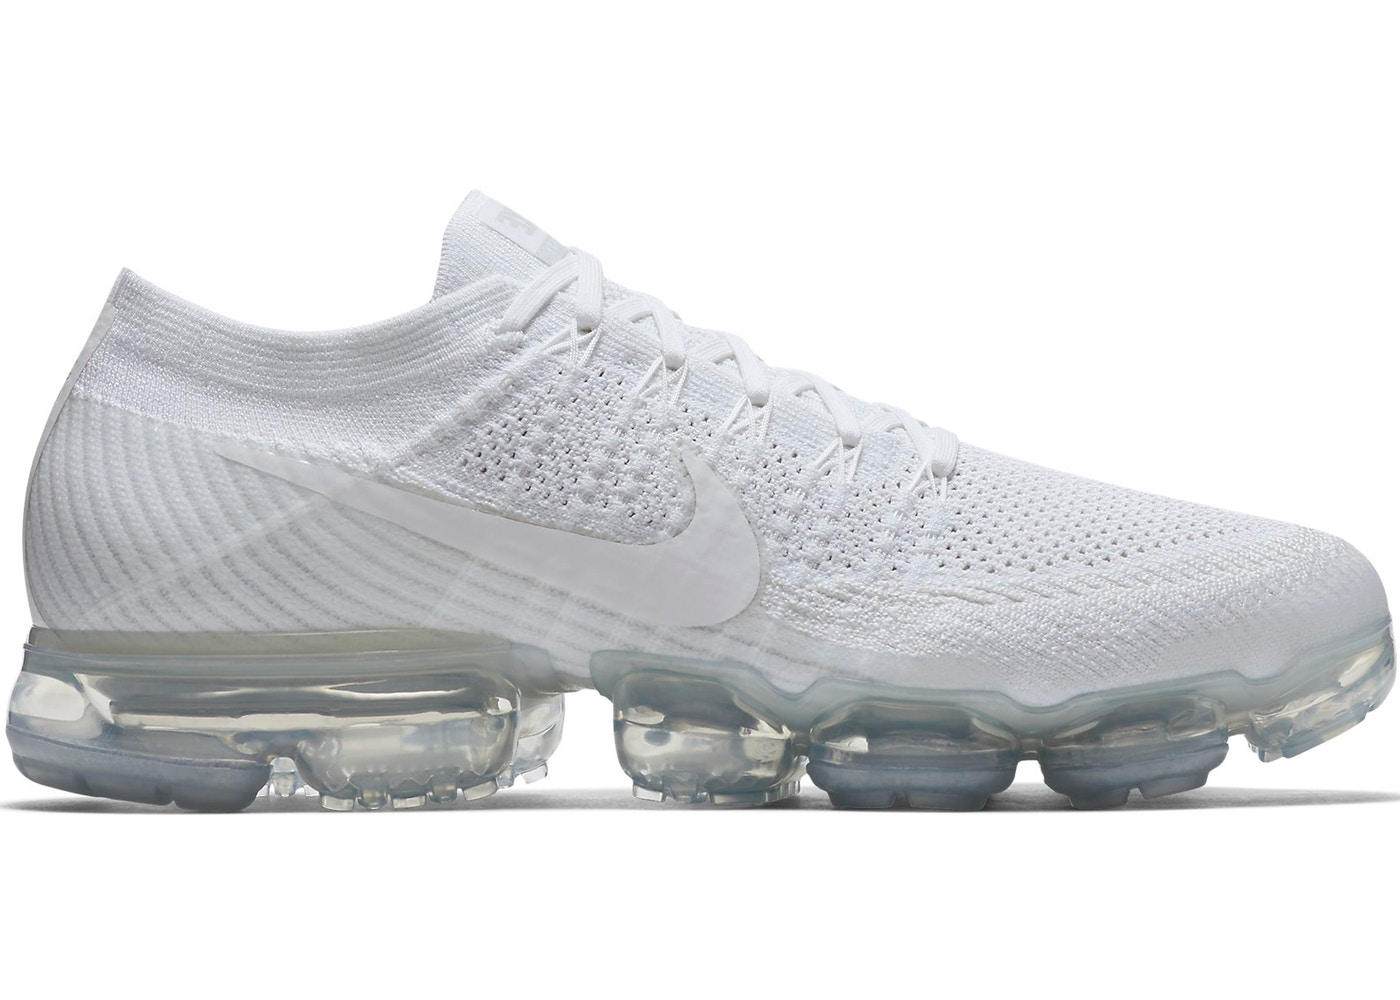 3eadd33f5ddf Air VaporMax Triple White - 849558-100